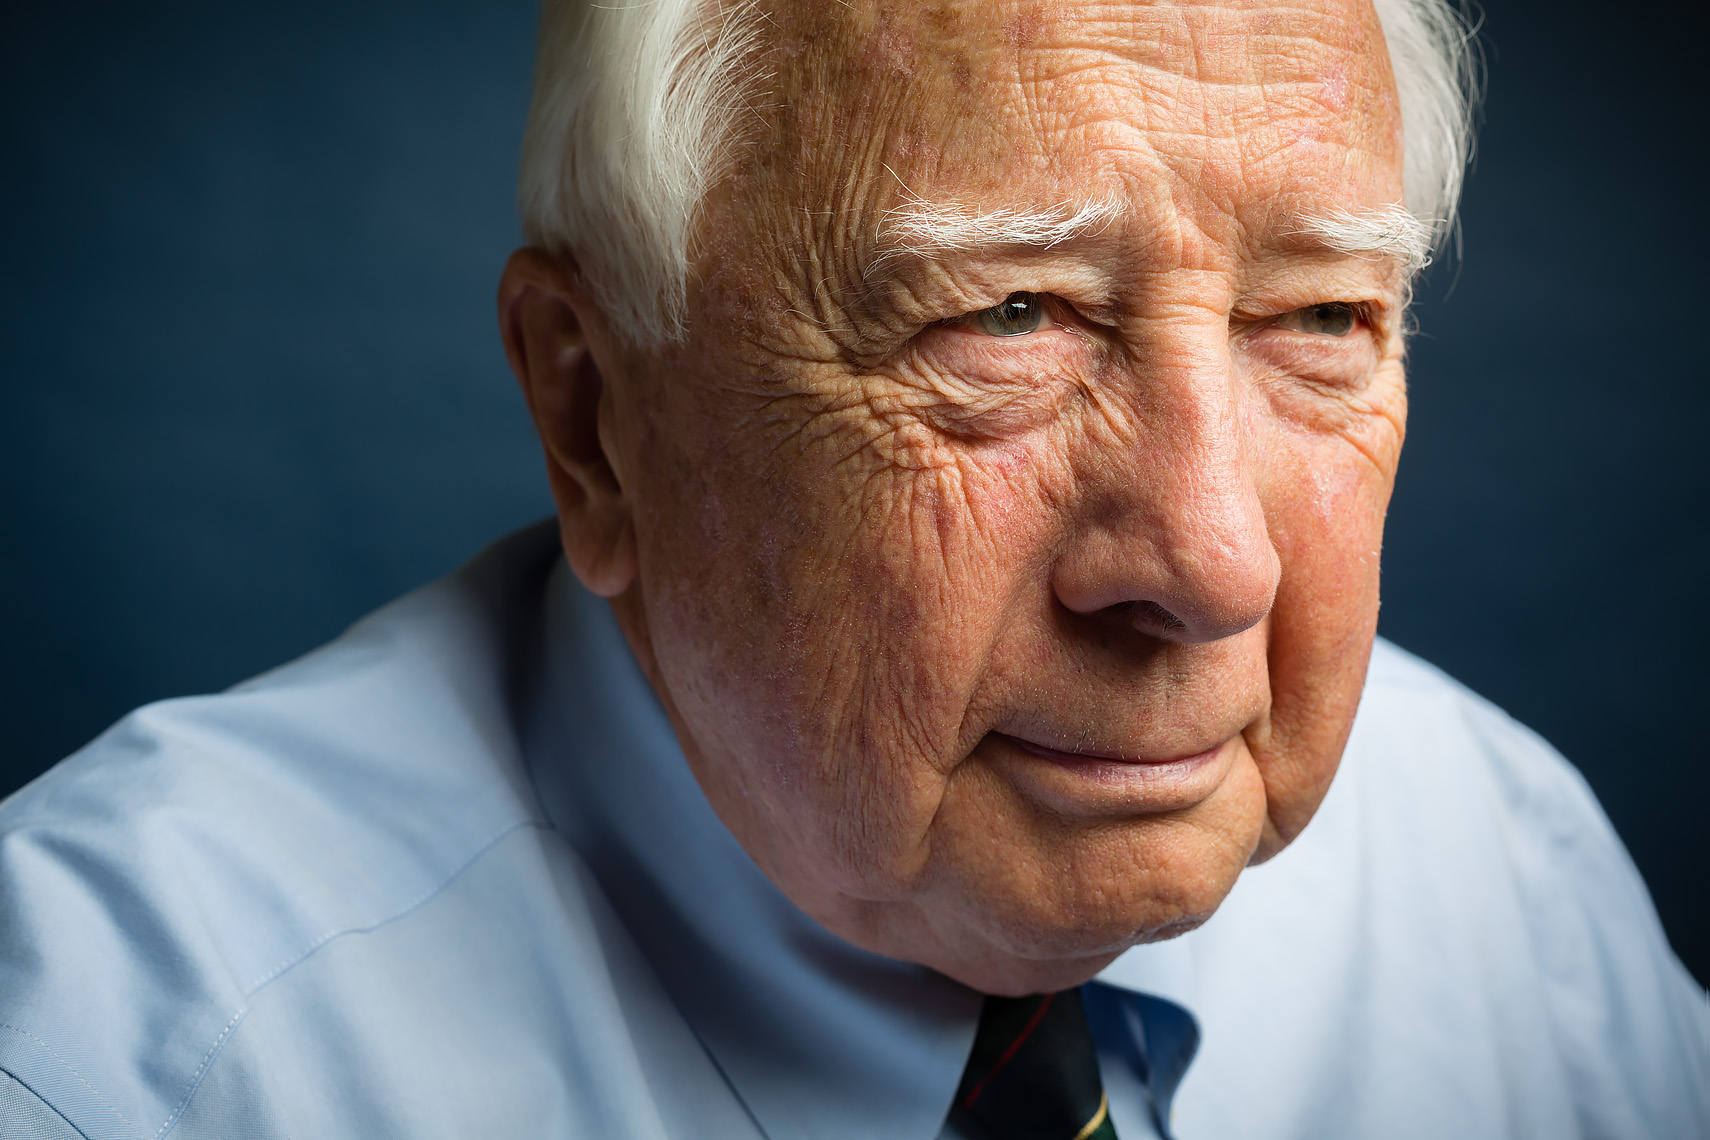 DAVID MCCULLOUGH • HISTORIAN & AUTHOR • JASON GROW PHOTOGRAPHY